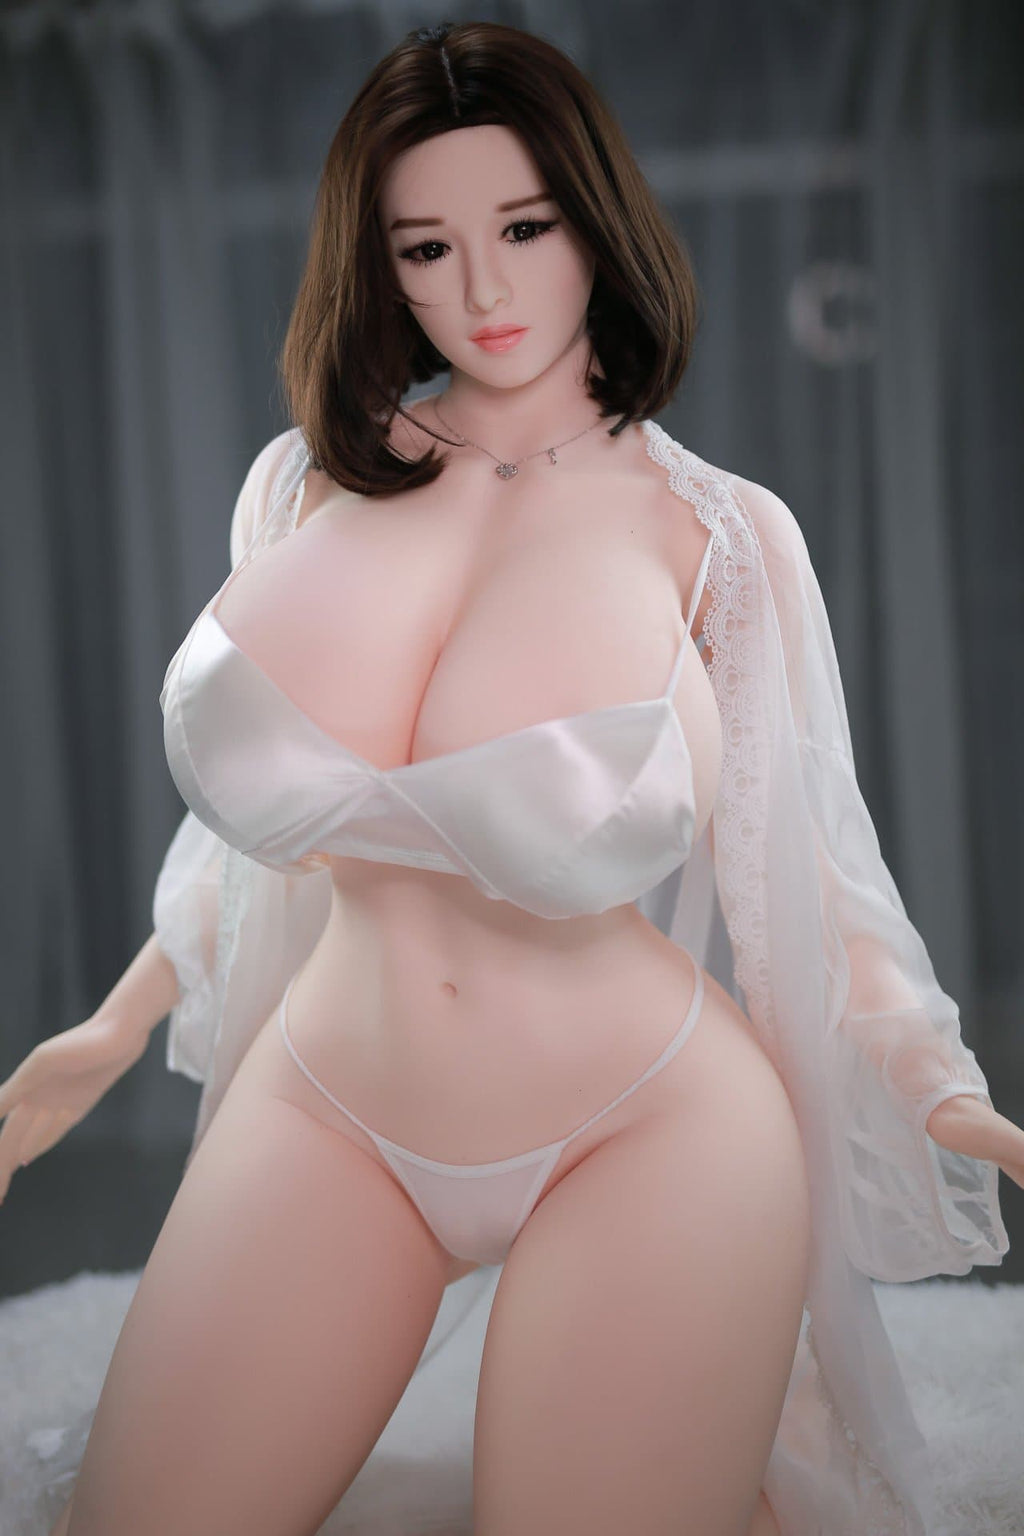 clarice 159cm 5ft3 brown hair curvy giant massive tits jy tpe sex doll